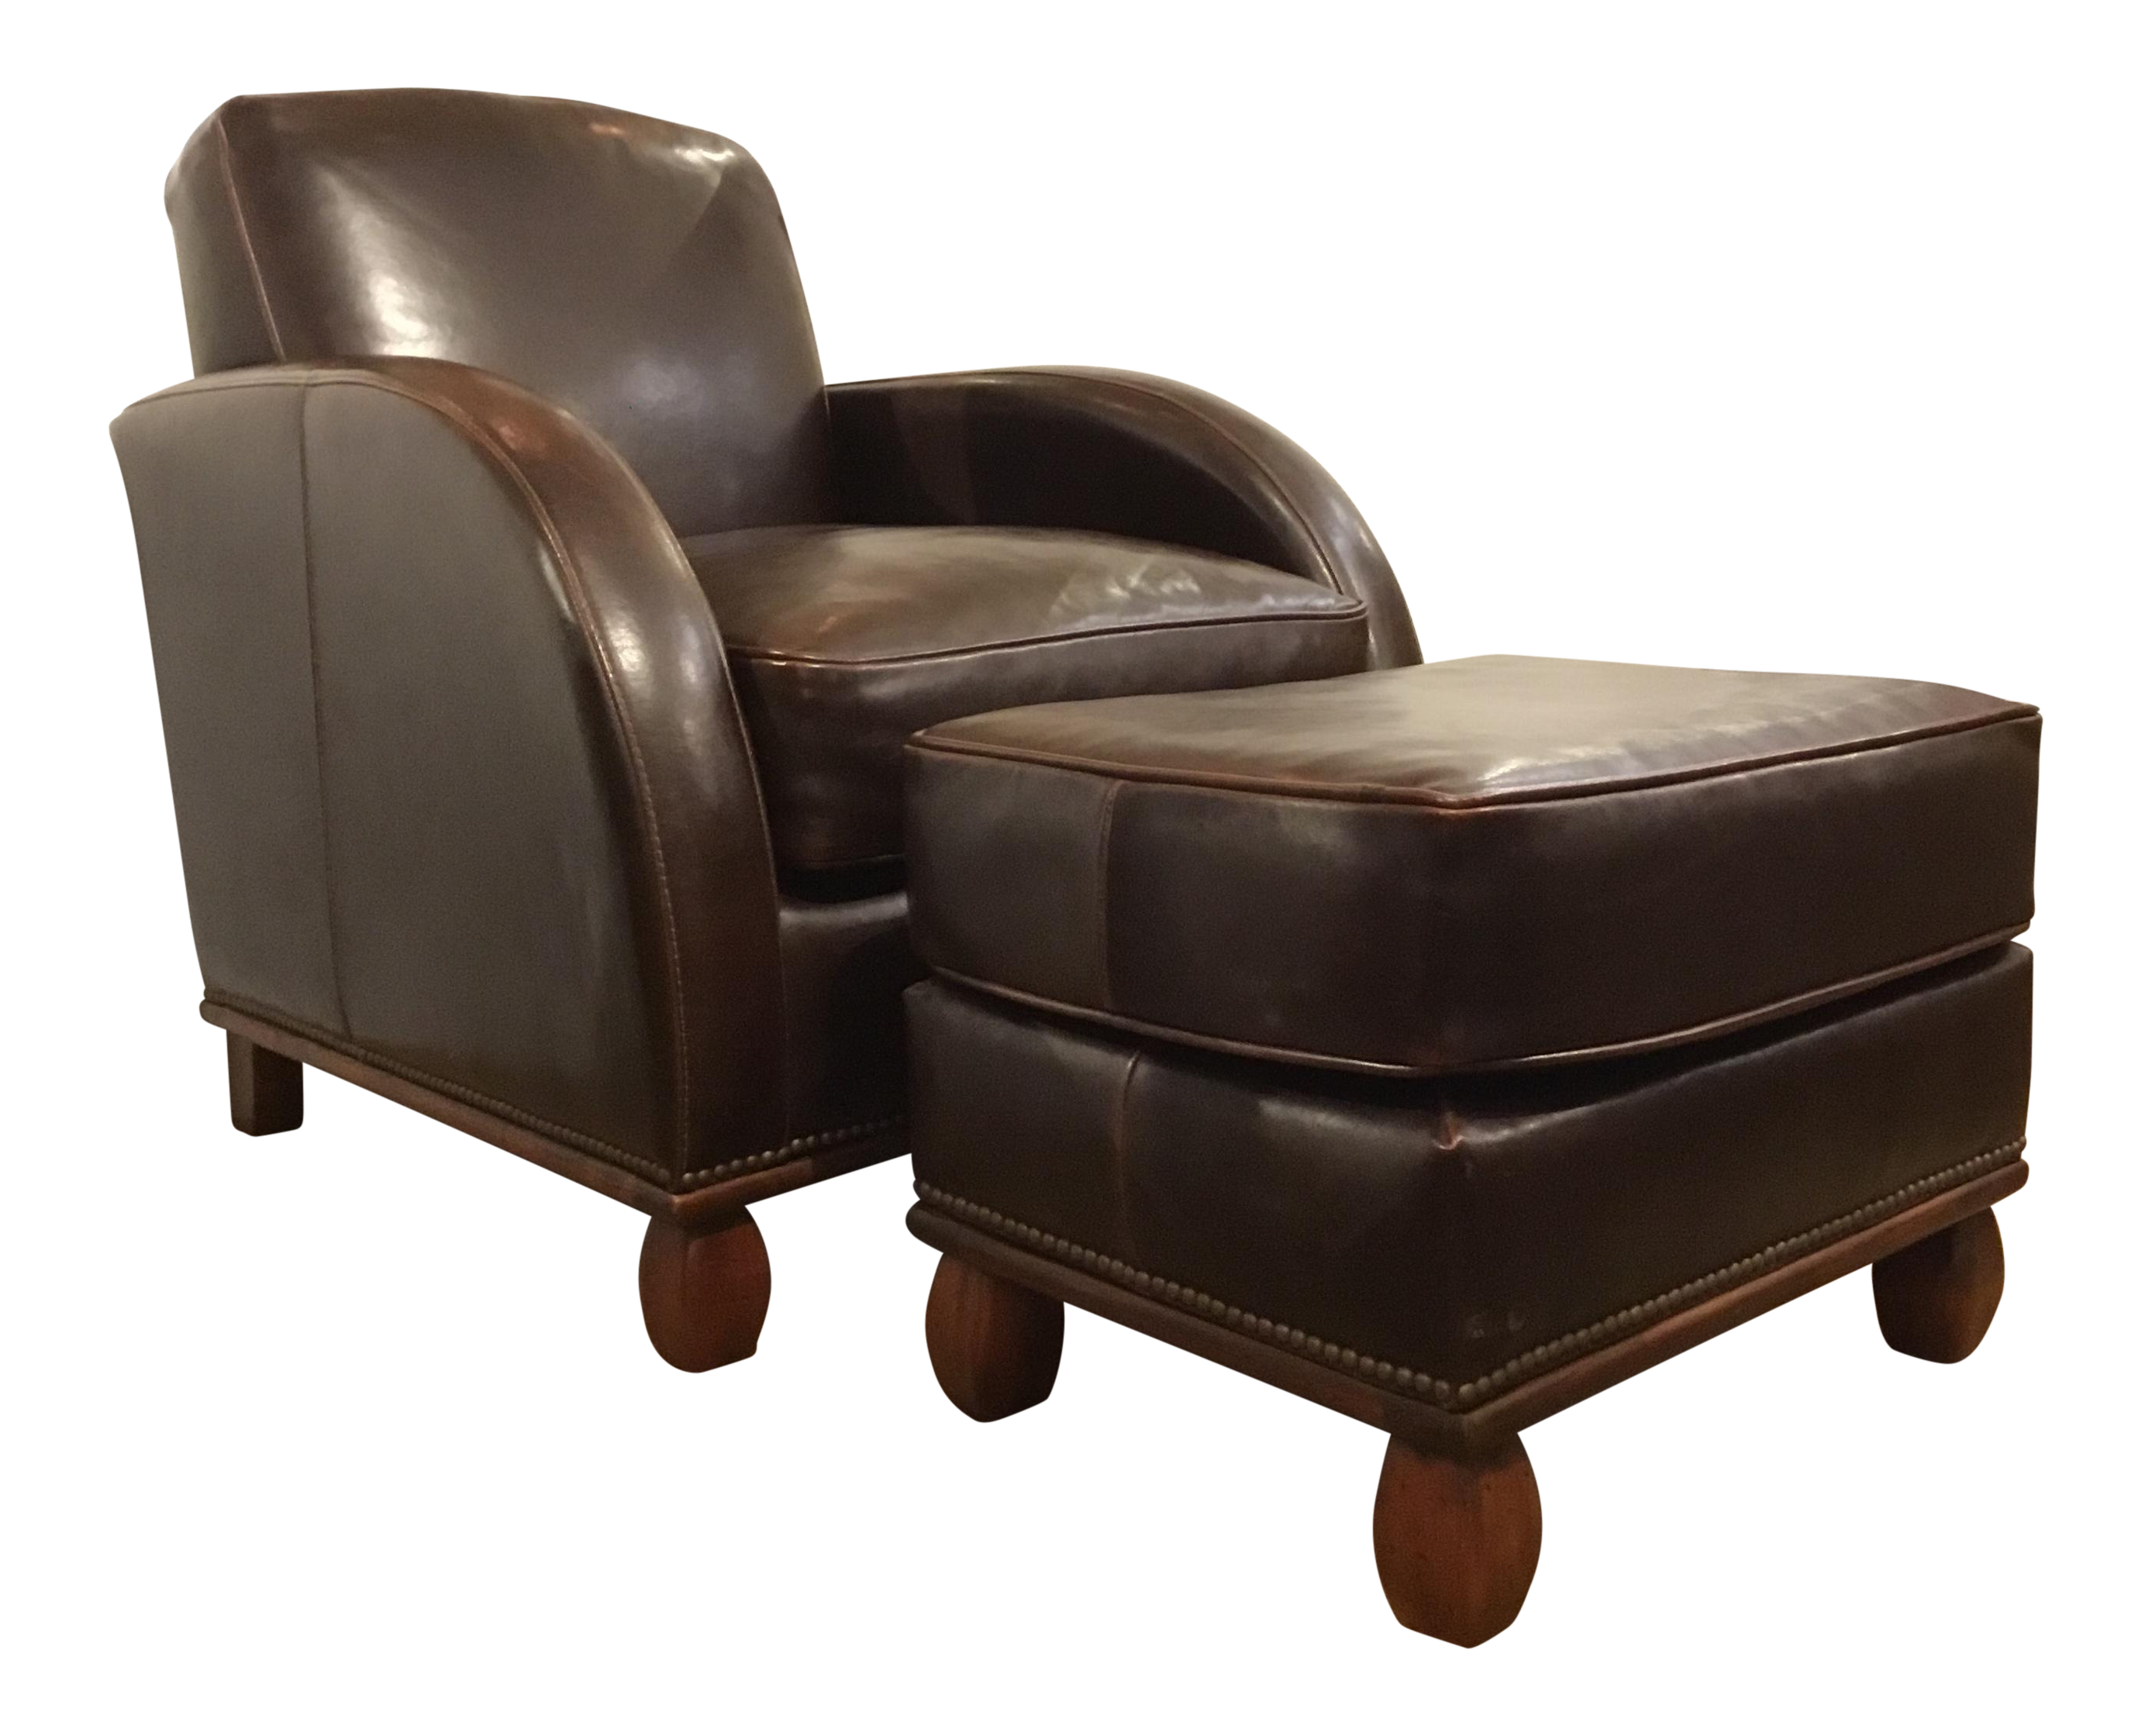 Superb Art Deco Style Chocolate Brown Leather Club Chair And Ottoman Set Alphanode Cool Chair Designs And Ideas Alphanodeonline